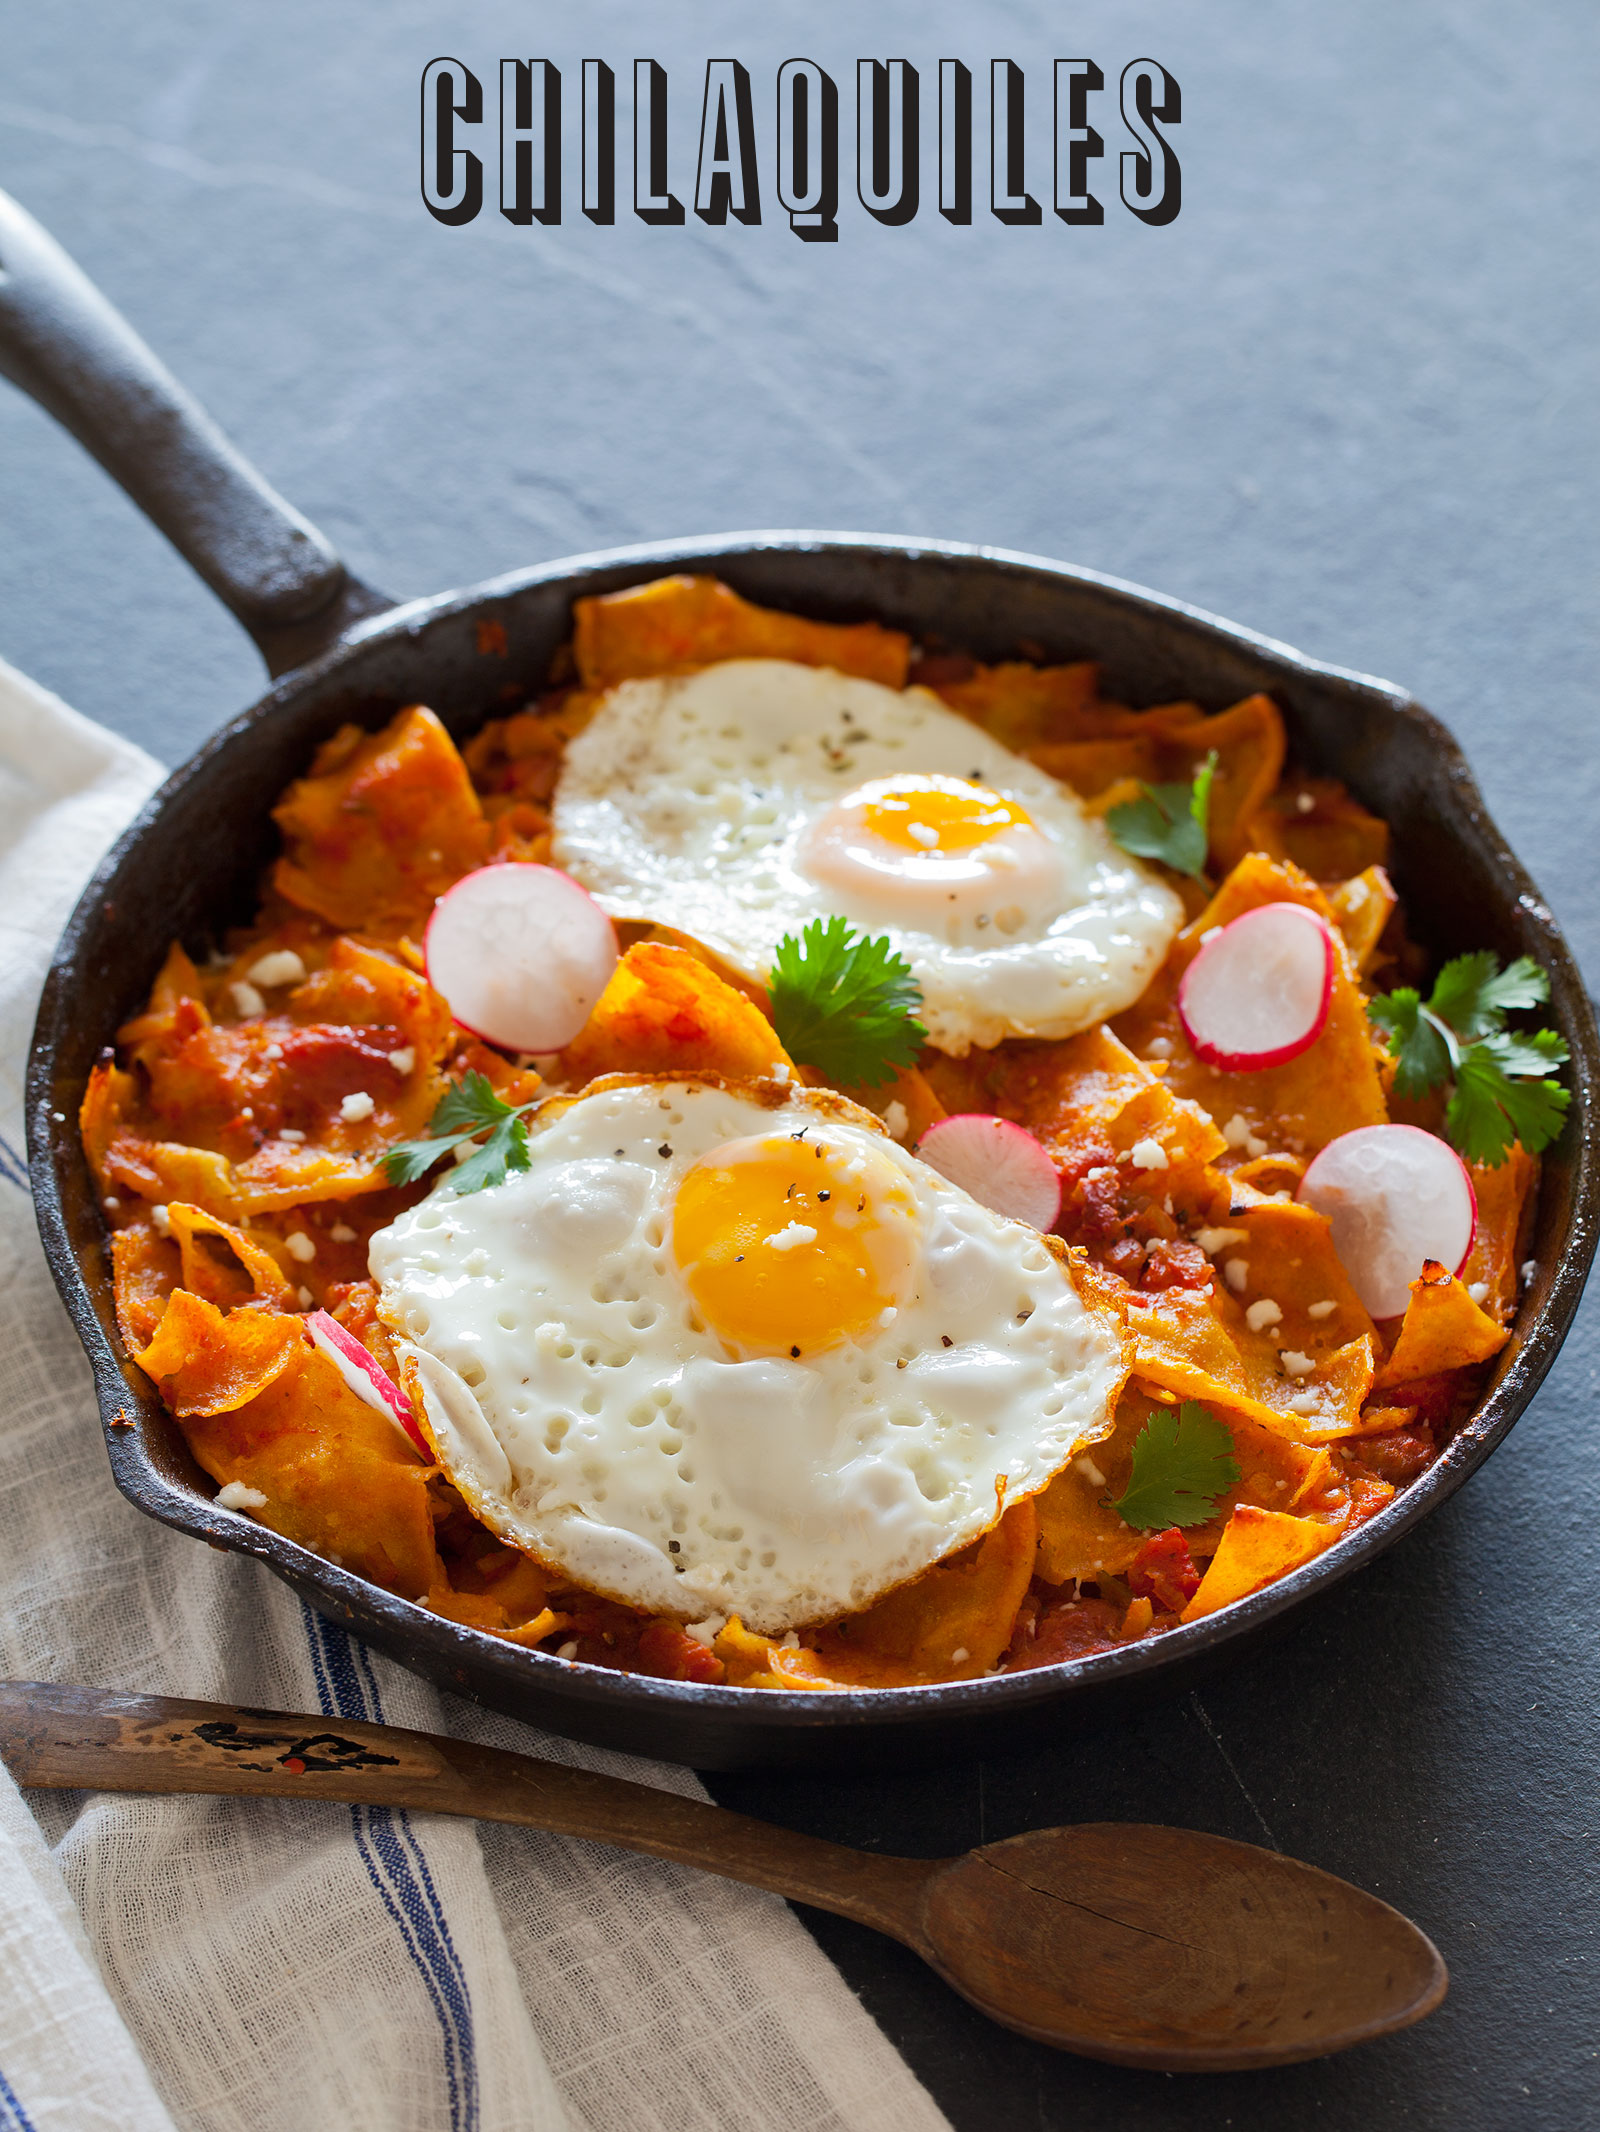 ... with fried eggs for breakfast or shredded chicken for lunch or dinner